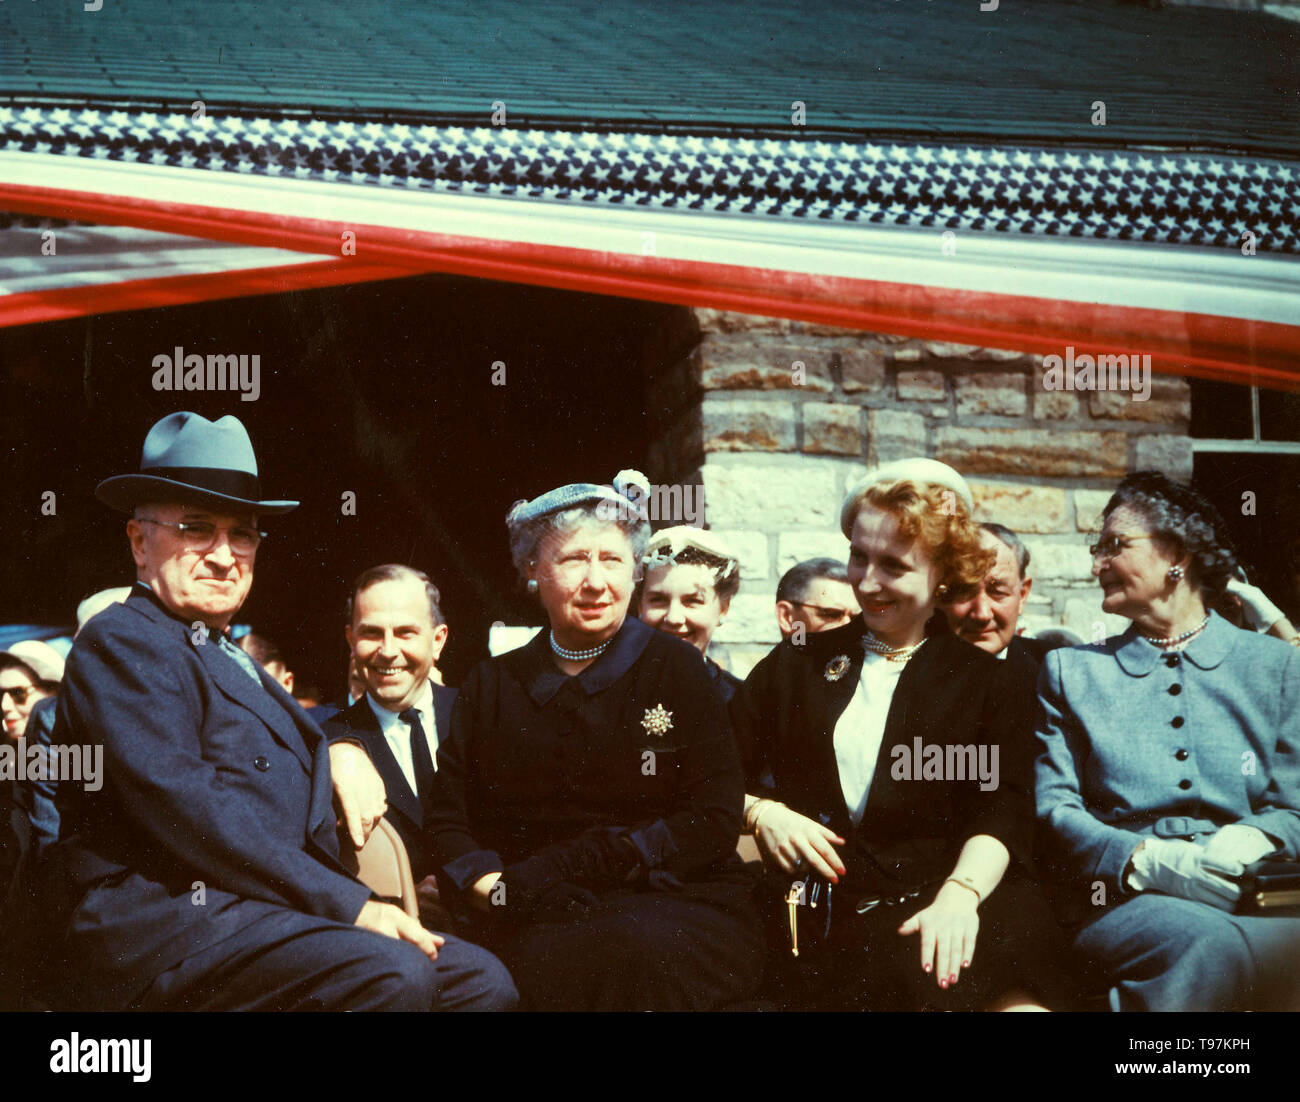 Truman Library Ground Breaking, 05/08/1955 - From left to right, former President Harry S. Truman, Mrs. Bess W. Truman, Margaret Truman, and Mary Jane Truman at the ground breaking ceremonies for the Harry S. Truman Library - Stock Image